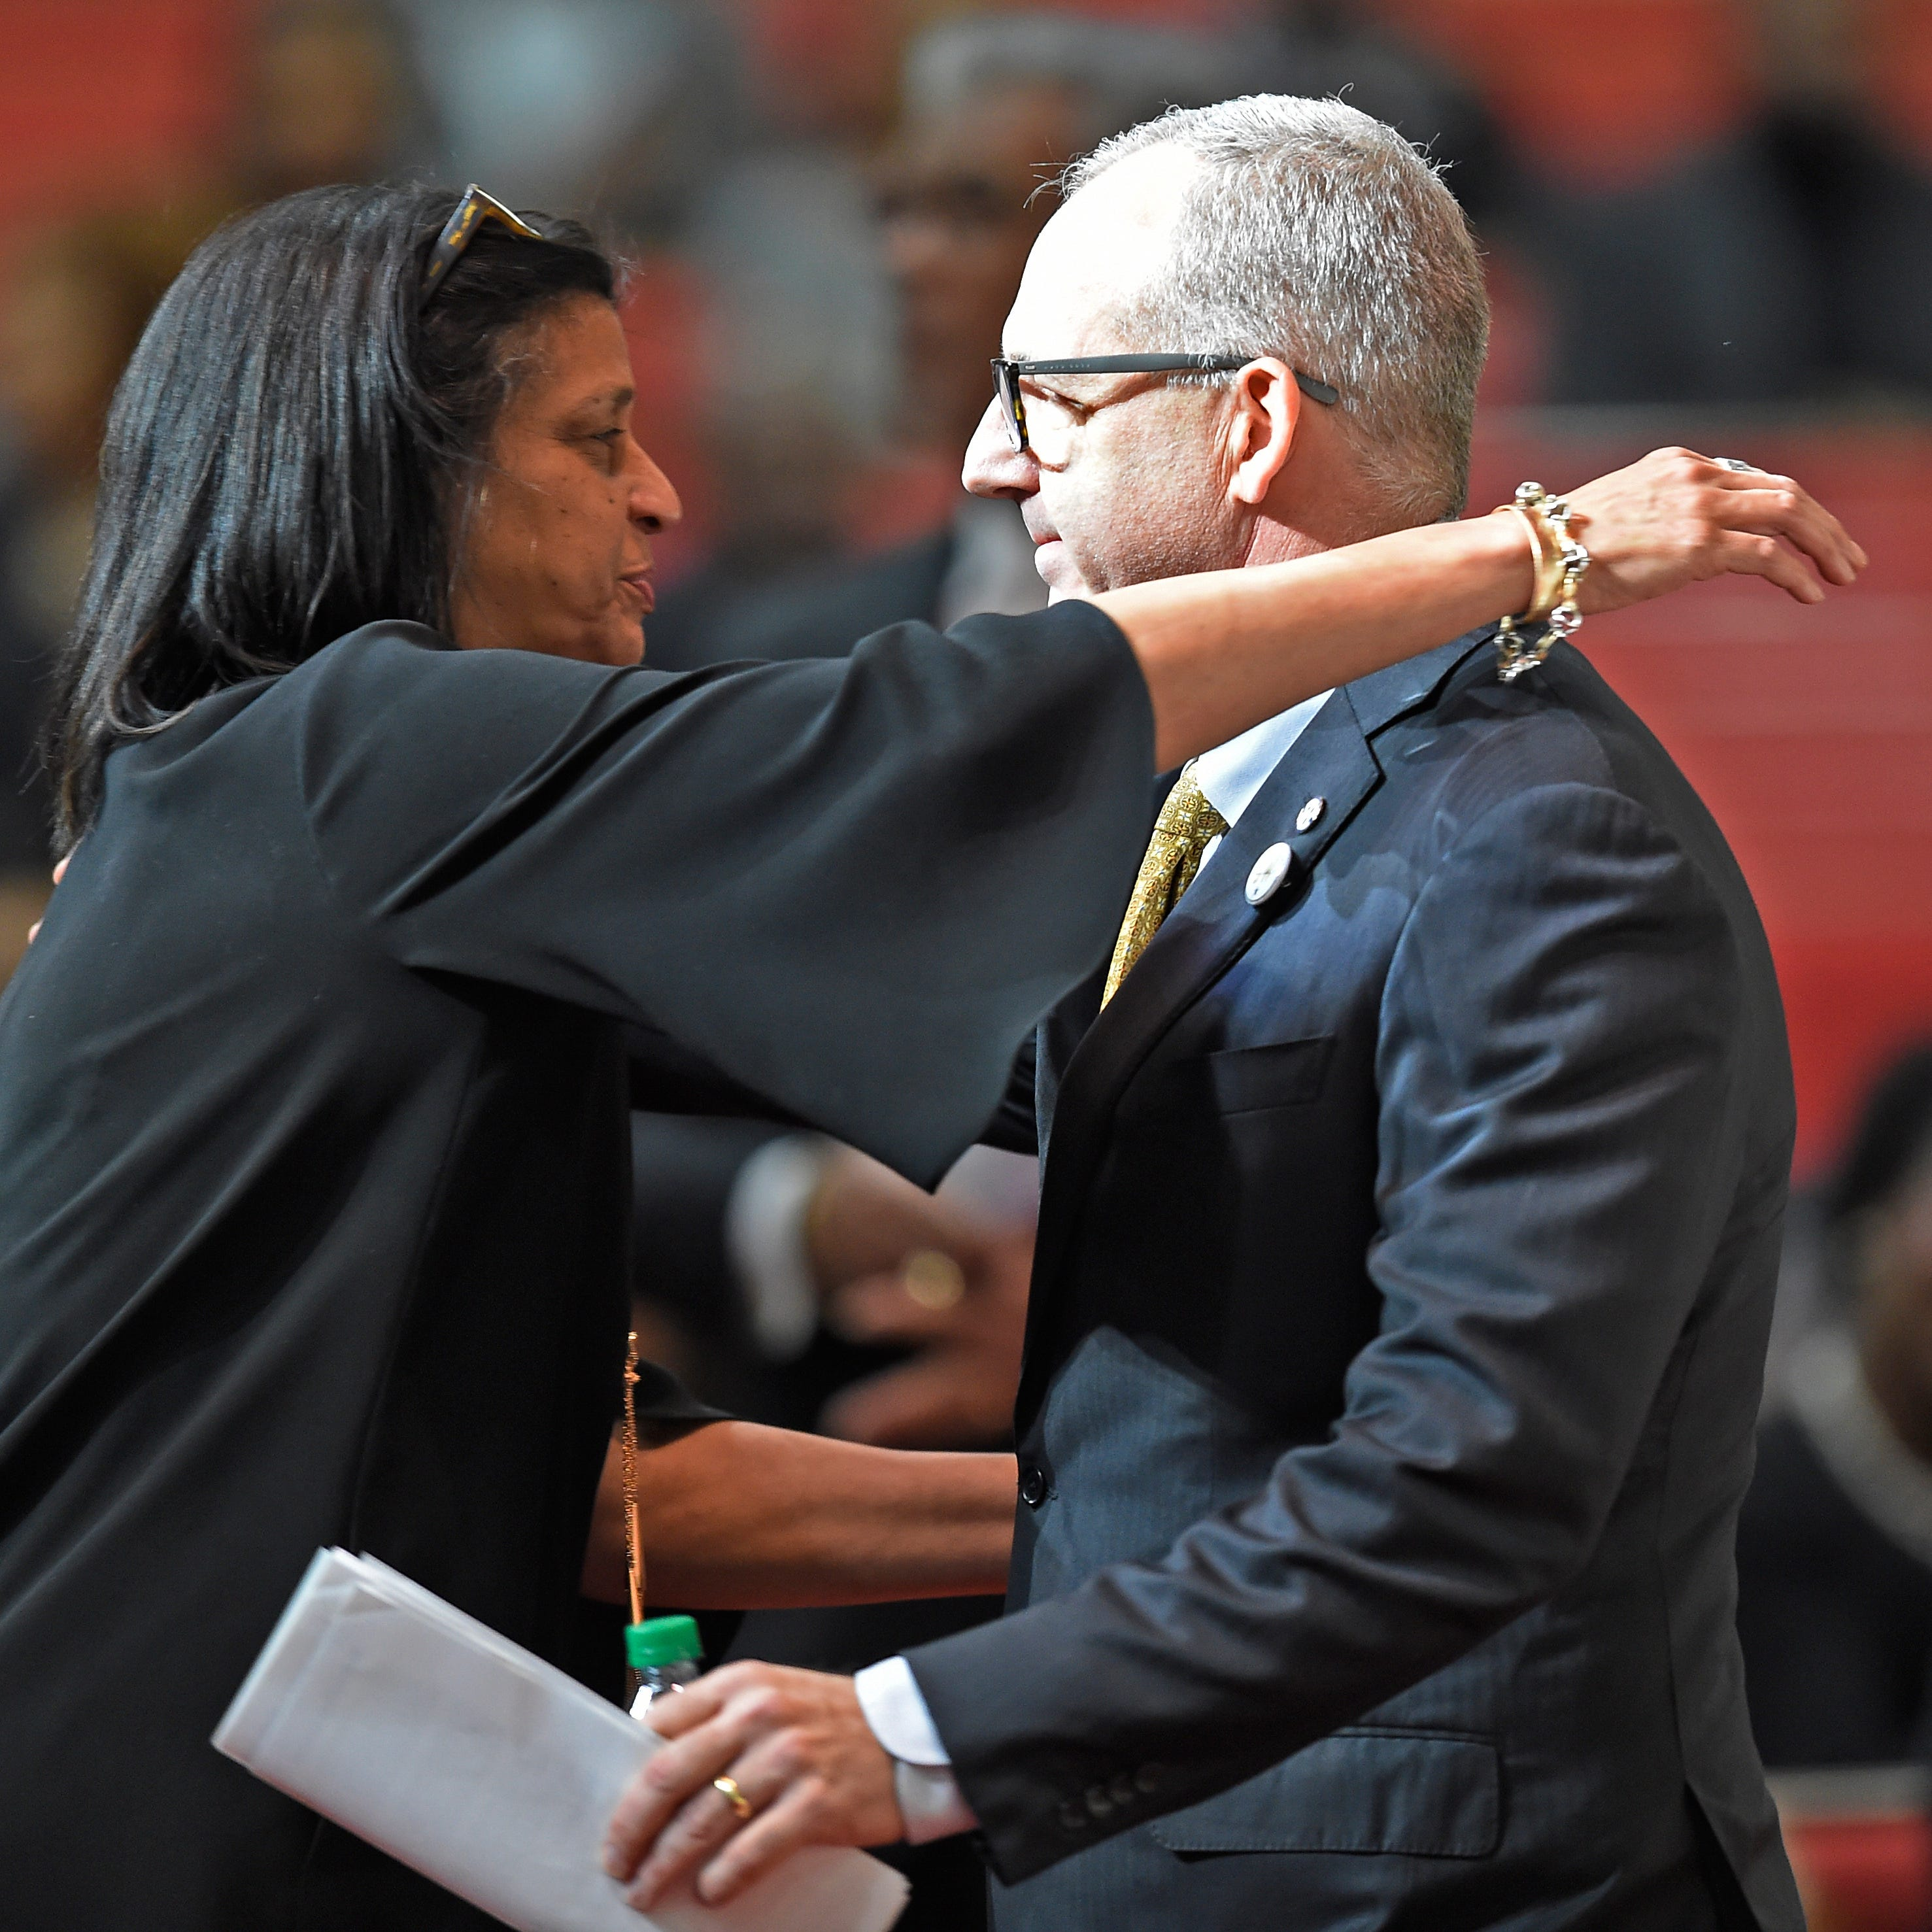 David Williams funeral: Tearful tributes, laughter help say farewell to Vanderbilt AD